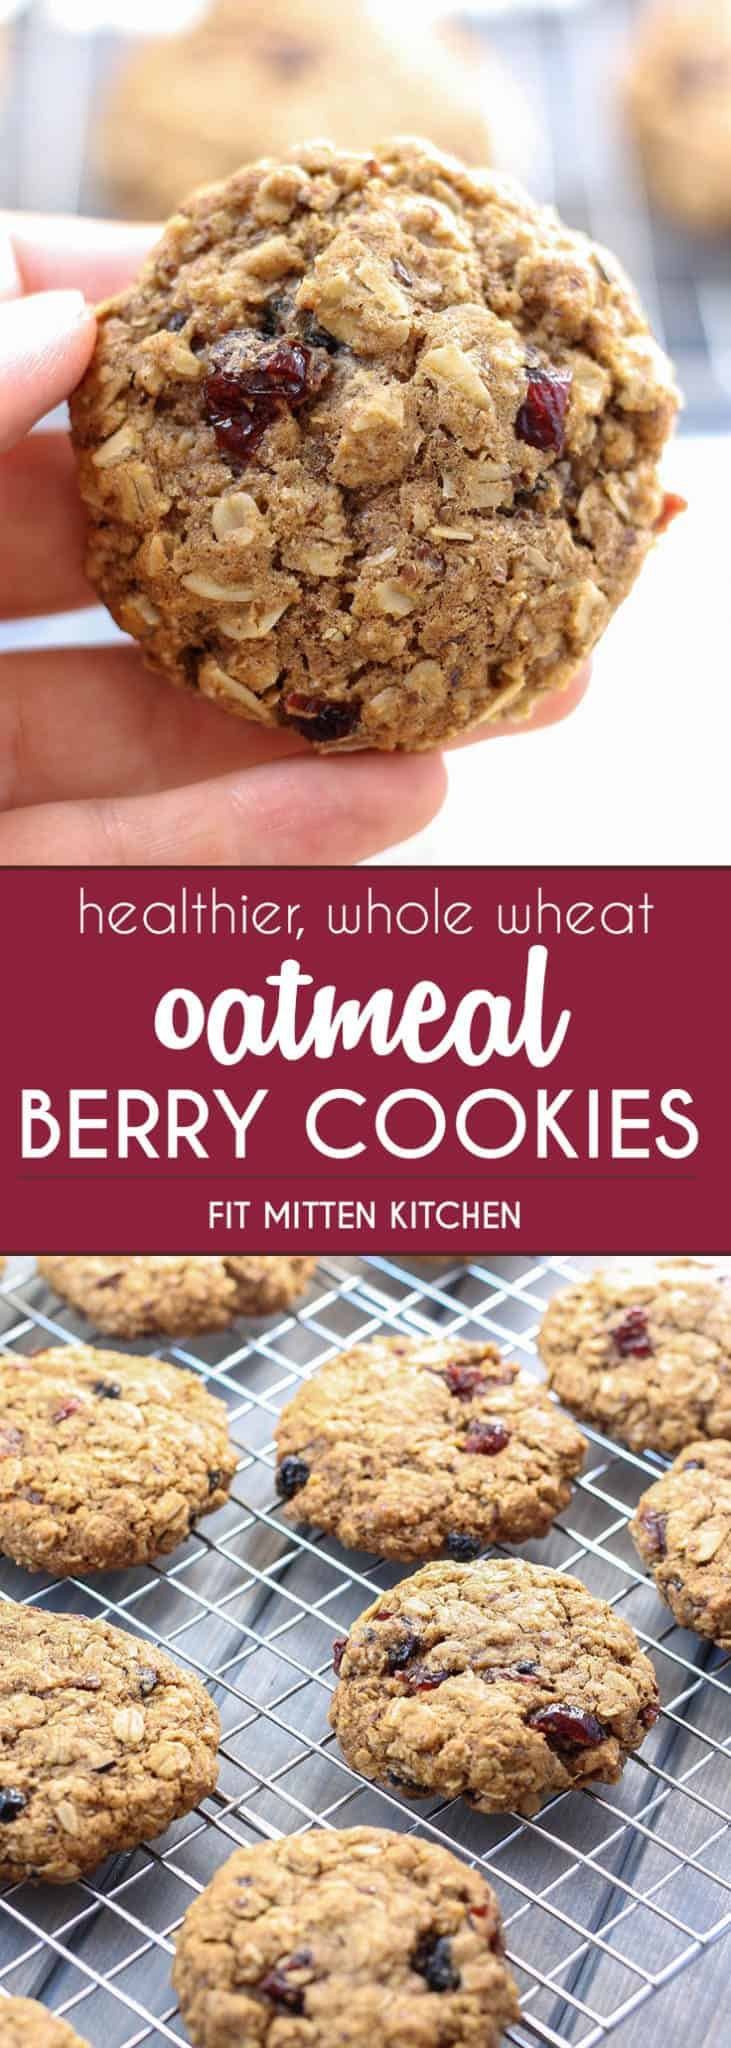 Healthier and whole wheat Oatmeal Berry Cookies close up and on cooling rack